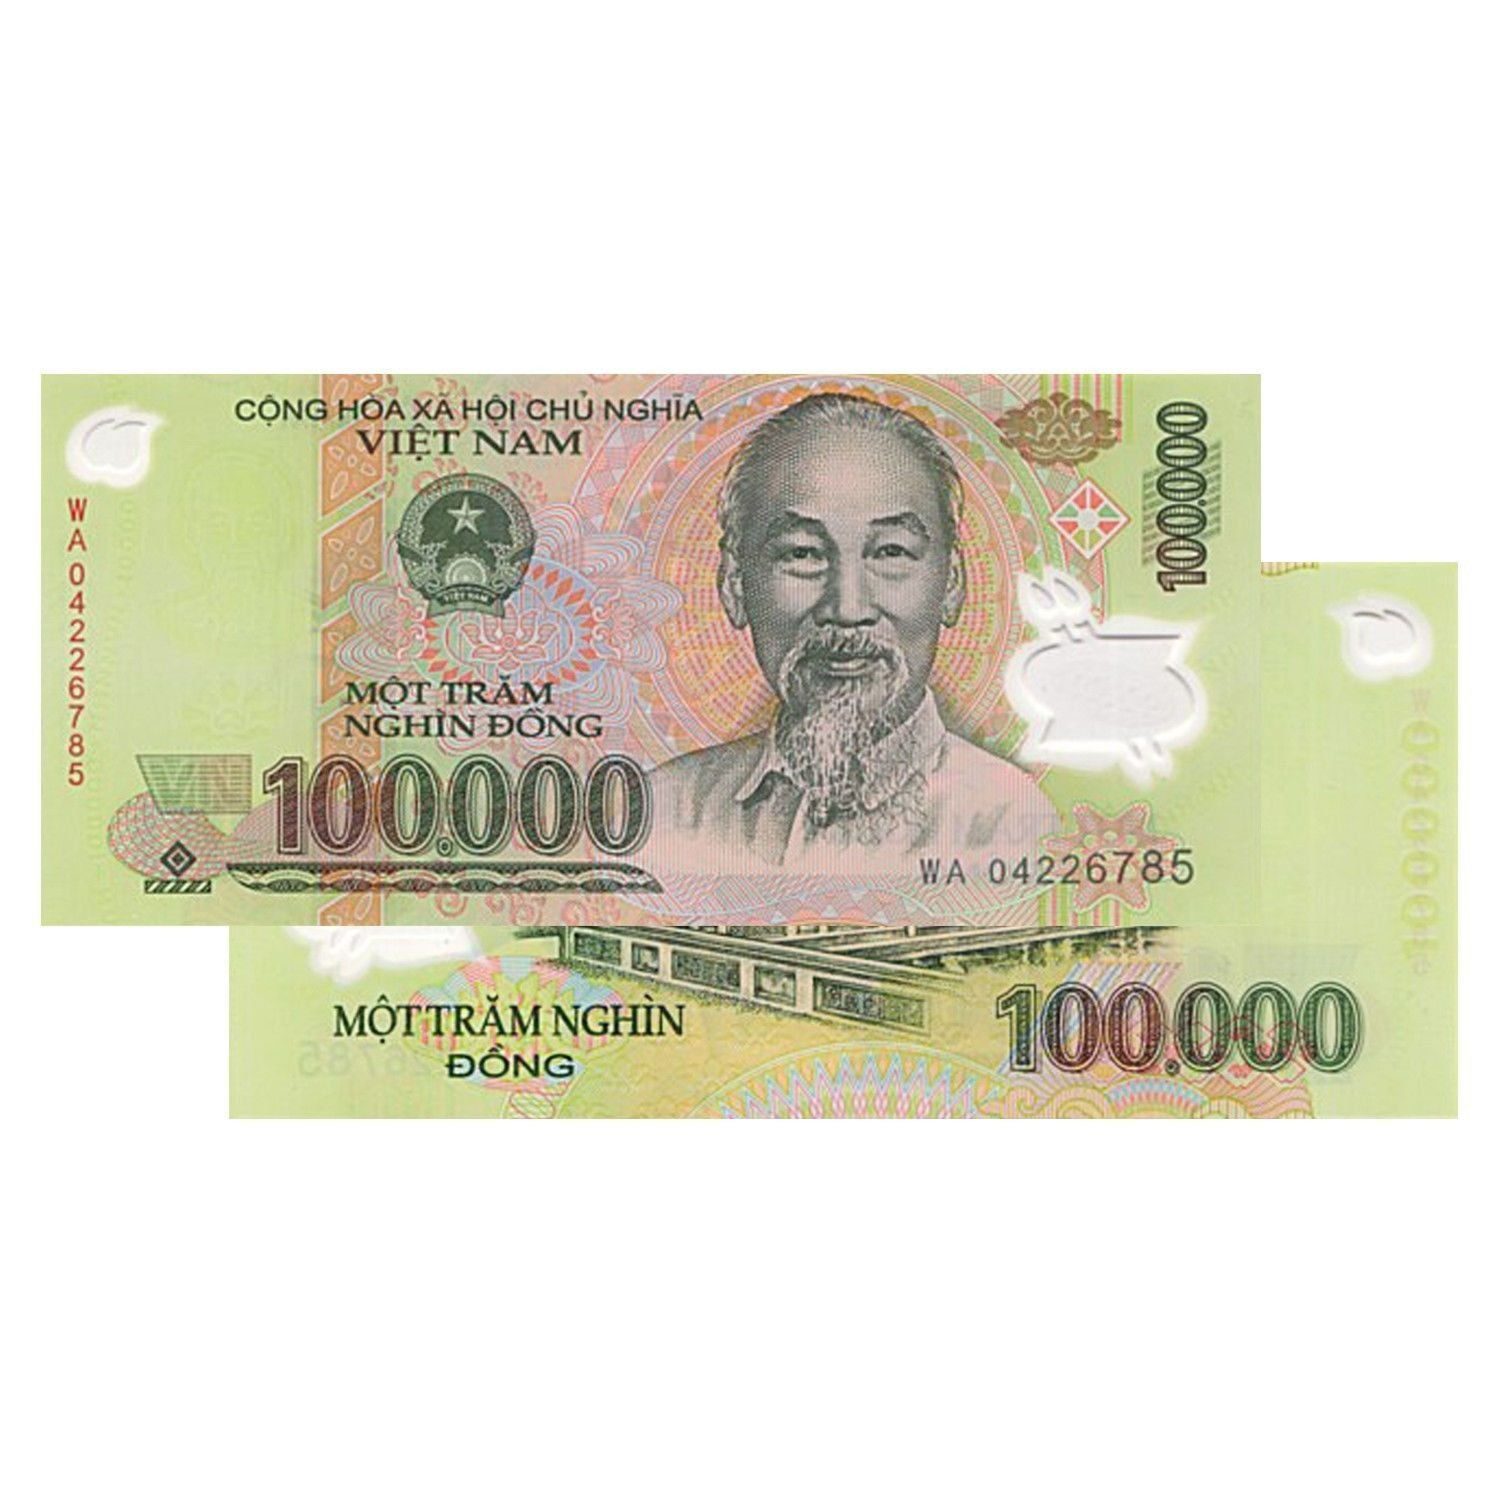 10 PCS Vietnam 100,000 Dong Currency VND Banknotes - History, Very Rare For collectors